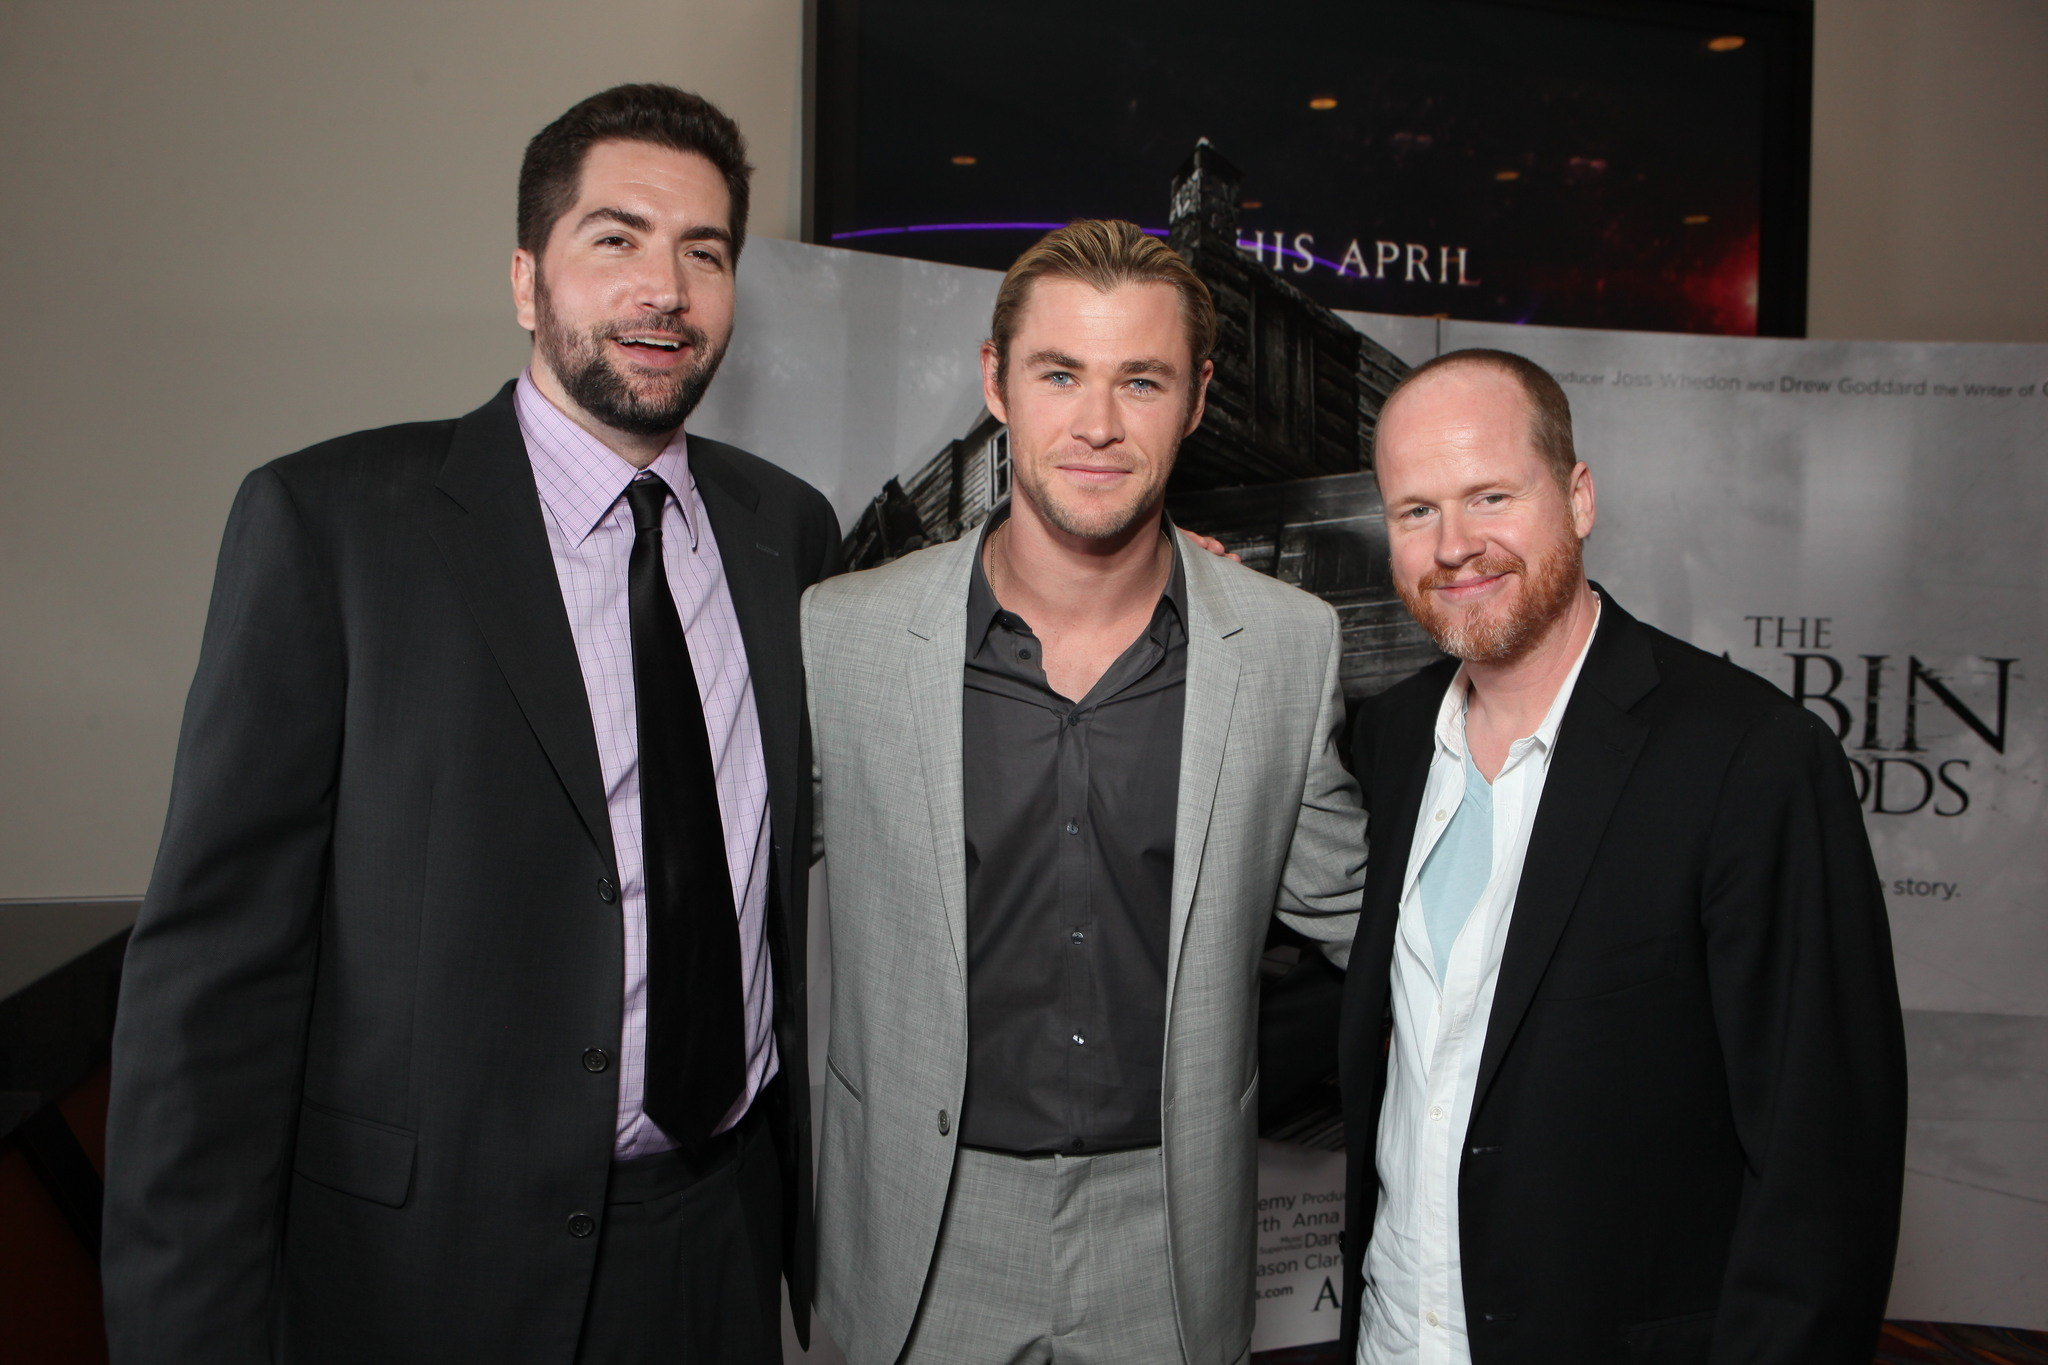 Joss Whedon, Chris Hemsworth, and Drew Goddard at an event for The Cabin in the Woods (2011)